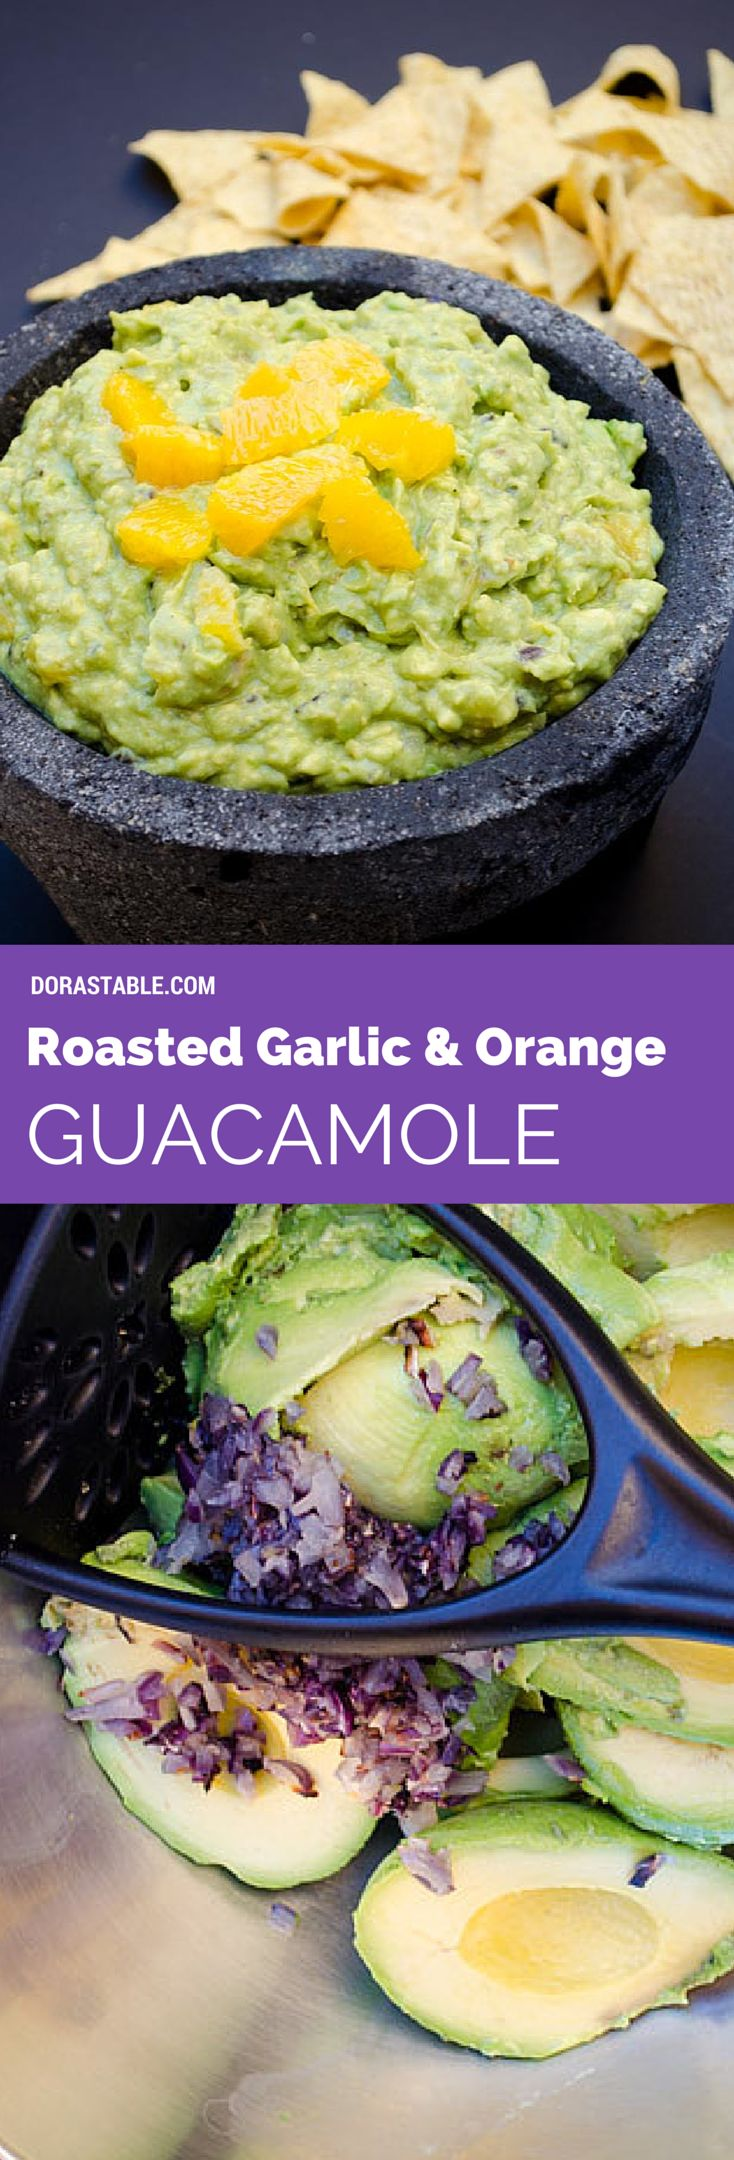 Roasted Garlic and Orange Guacamole. Creamy, spicy, tangy and great with chips.